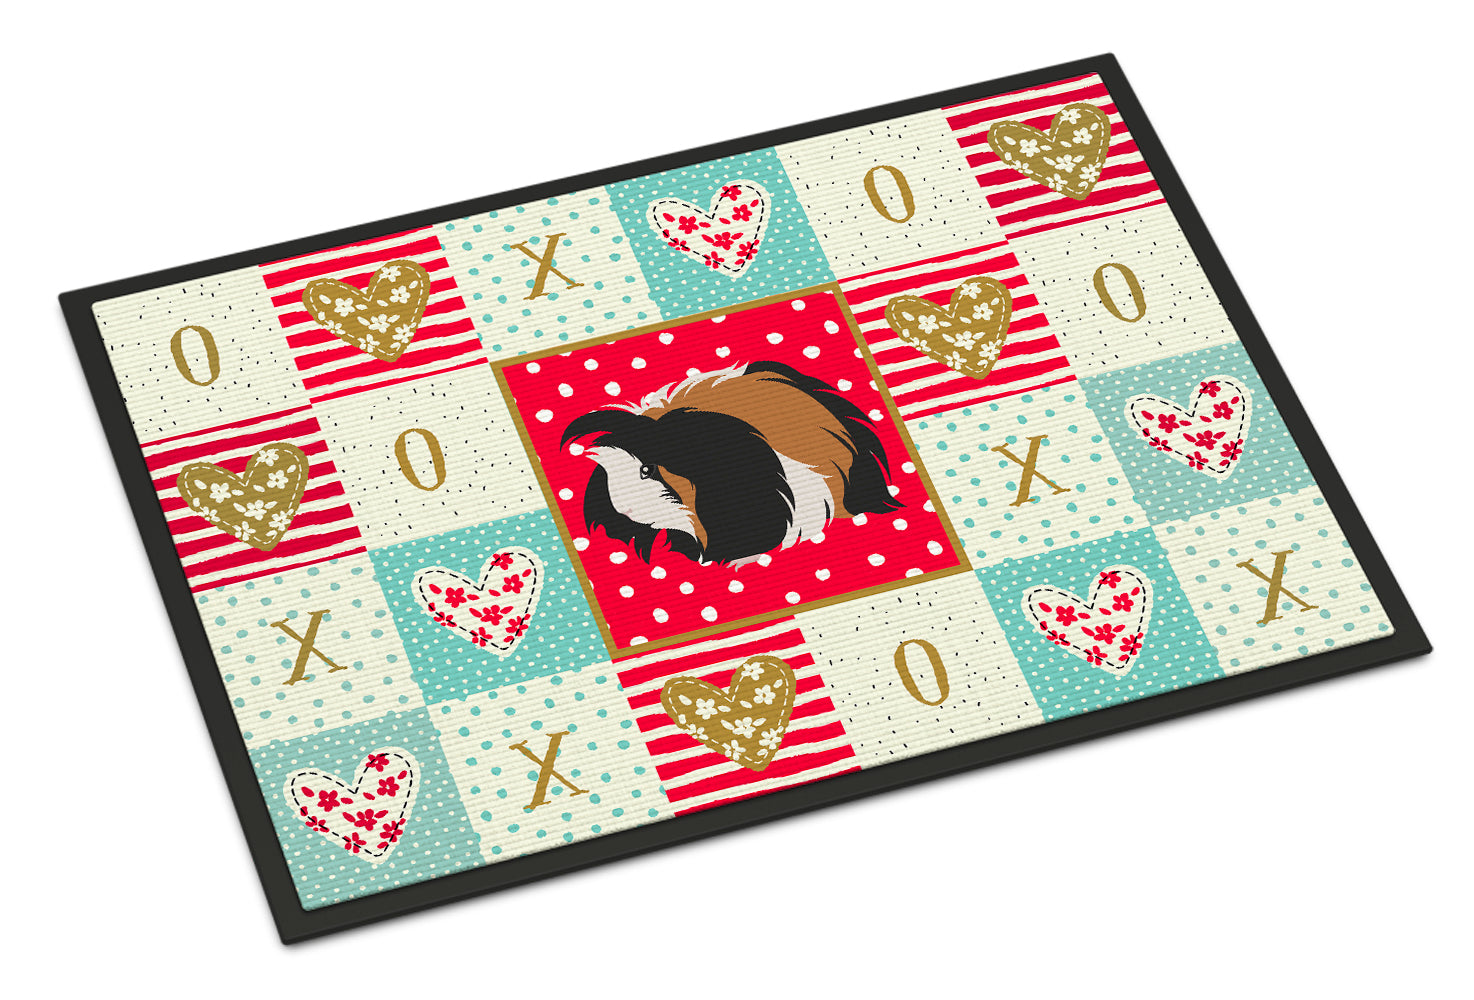 Sheba Guinea Pig Love Indoor or Outdoor Mat 18x27 CK5433MAT by Caroline's Treasures